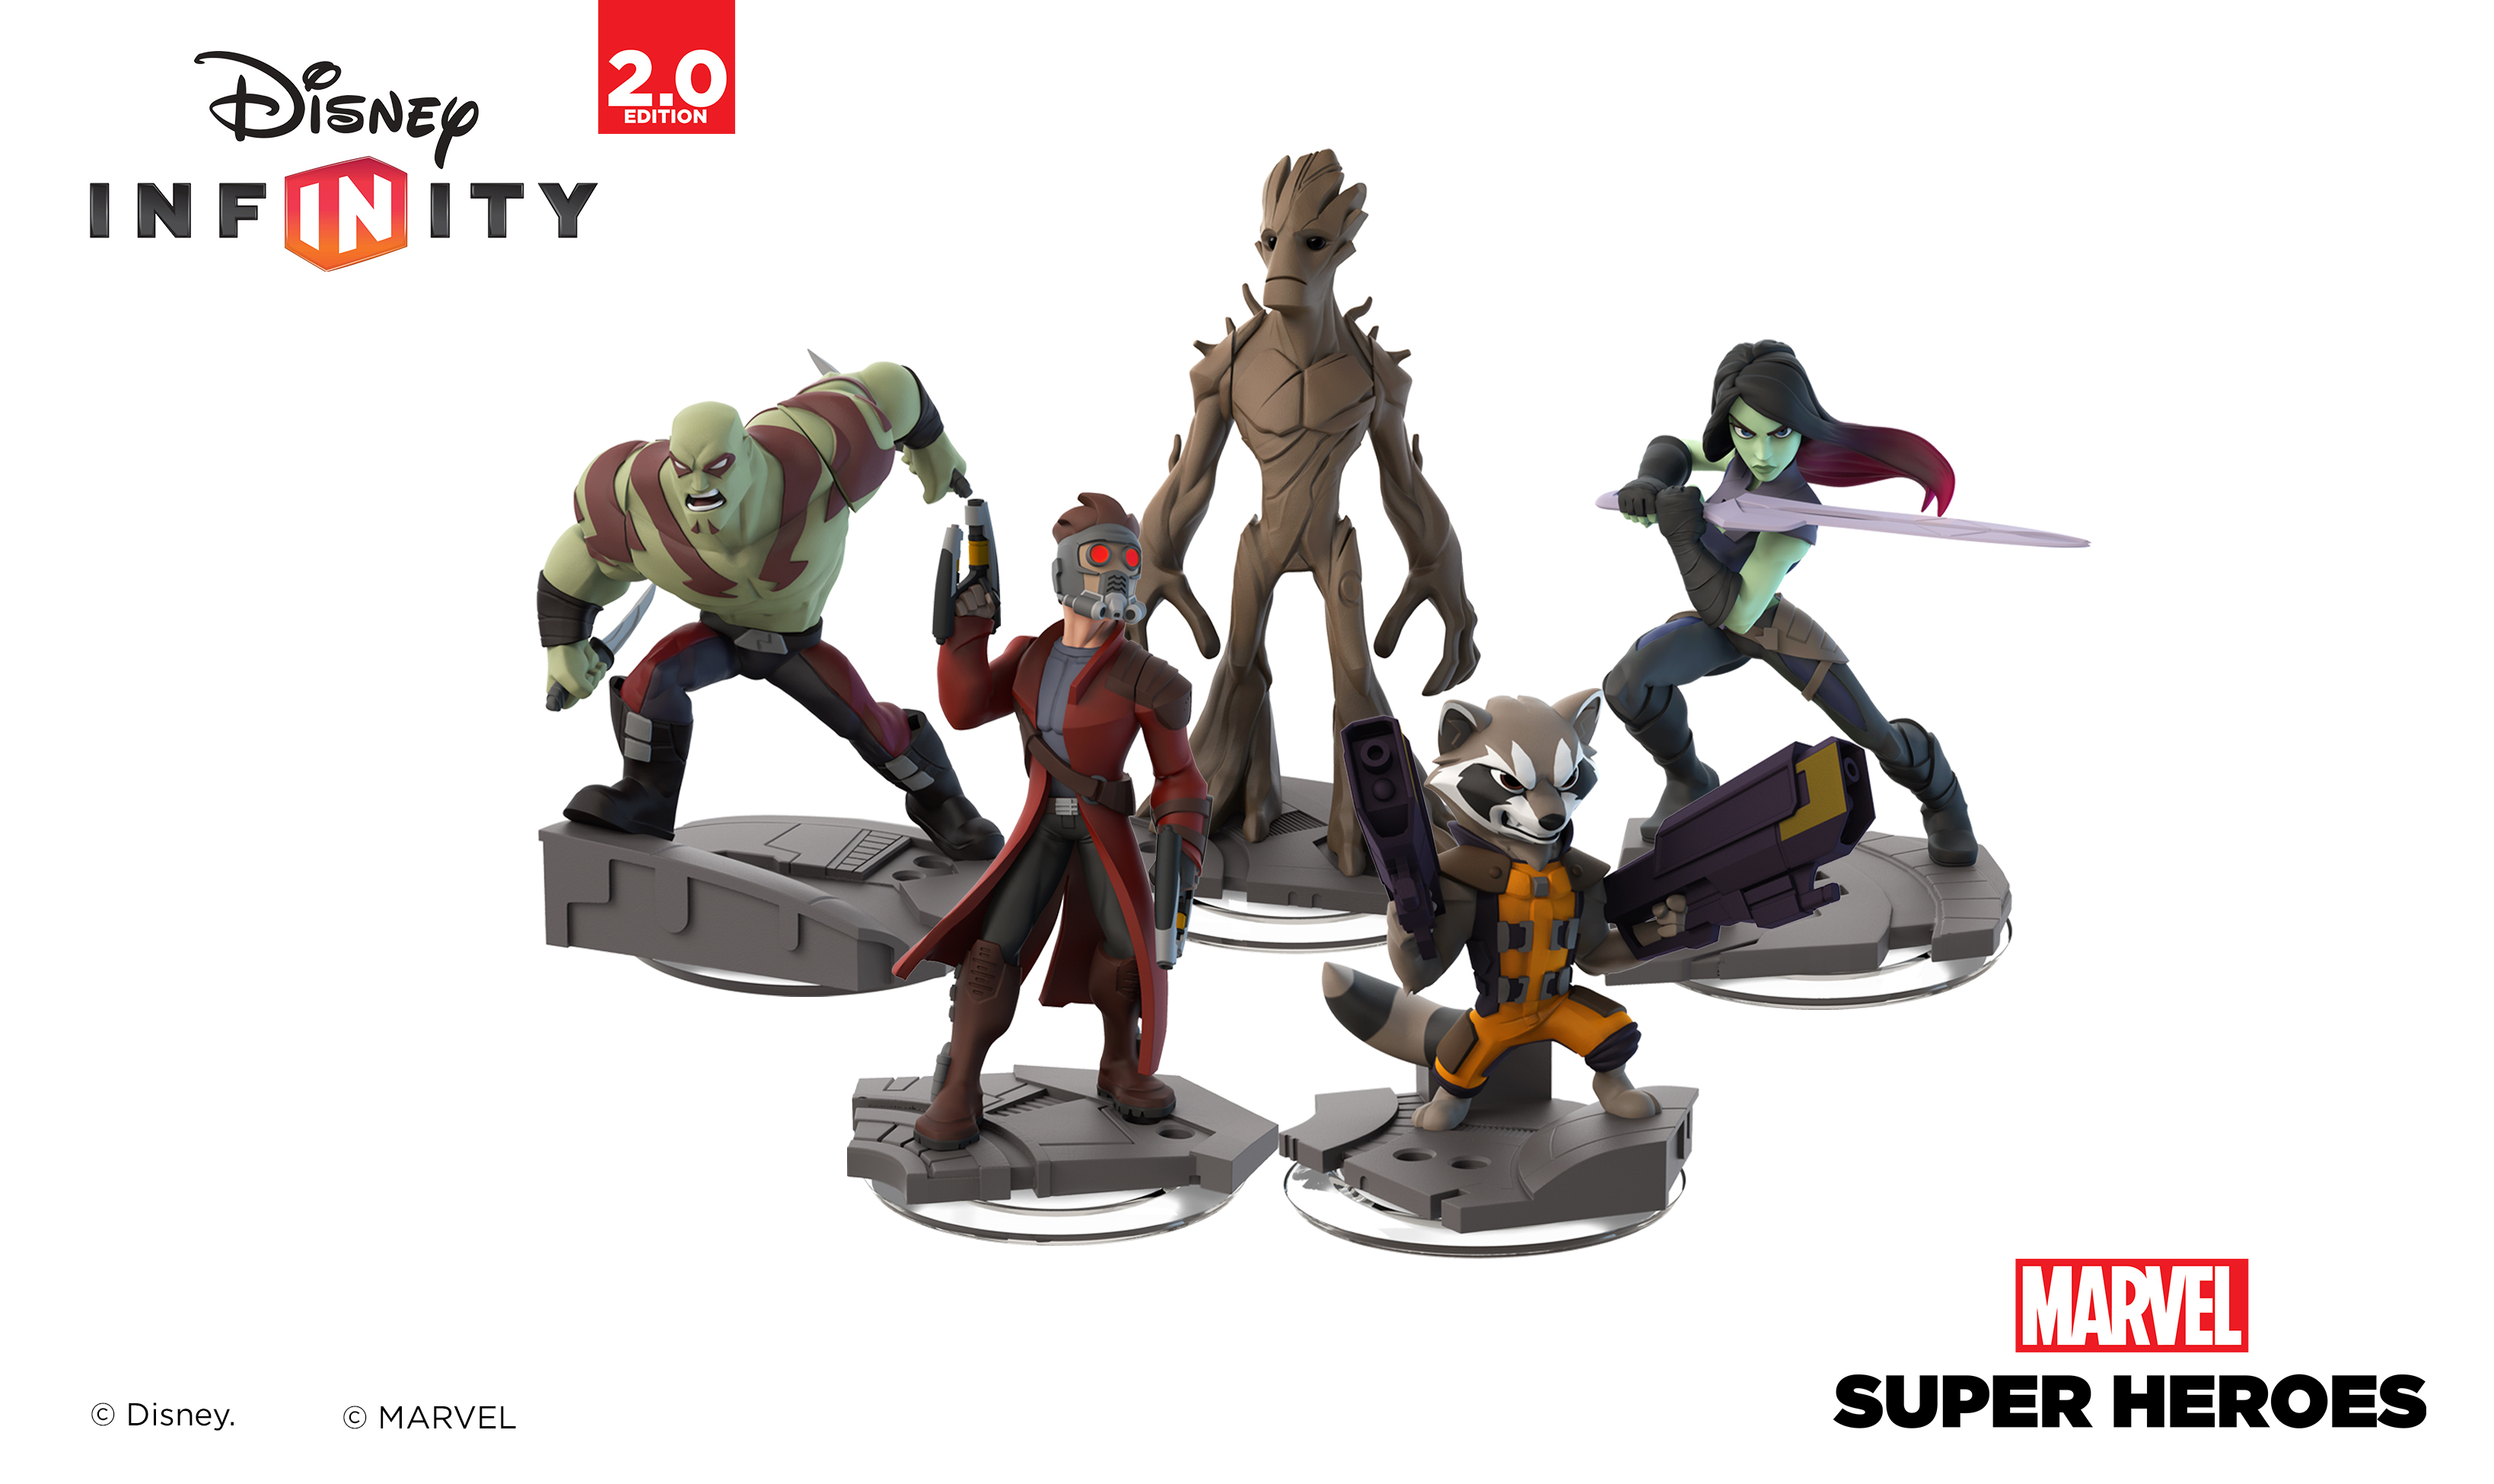 Marvel's Guardians of the Galaxy Play Set Figures for Disney Infinity: Marvel Super Heroes (Photo: Business Wire)